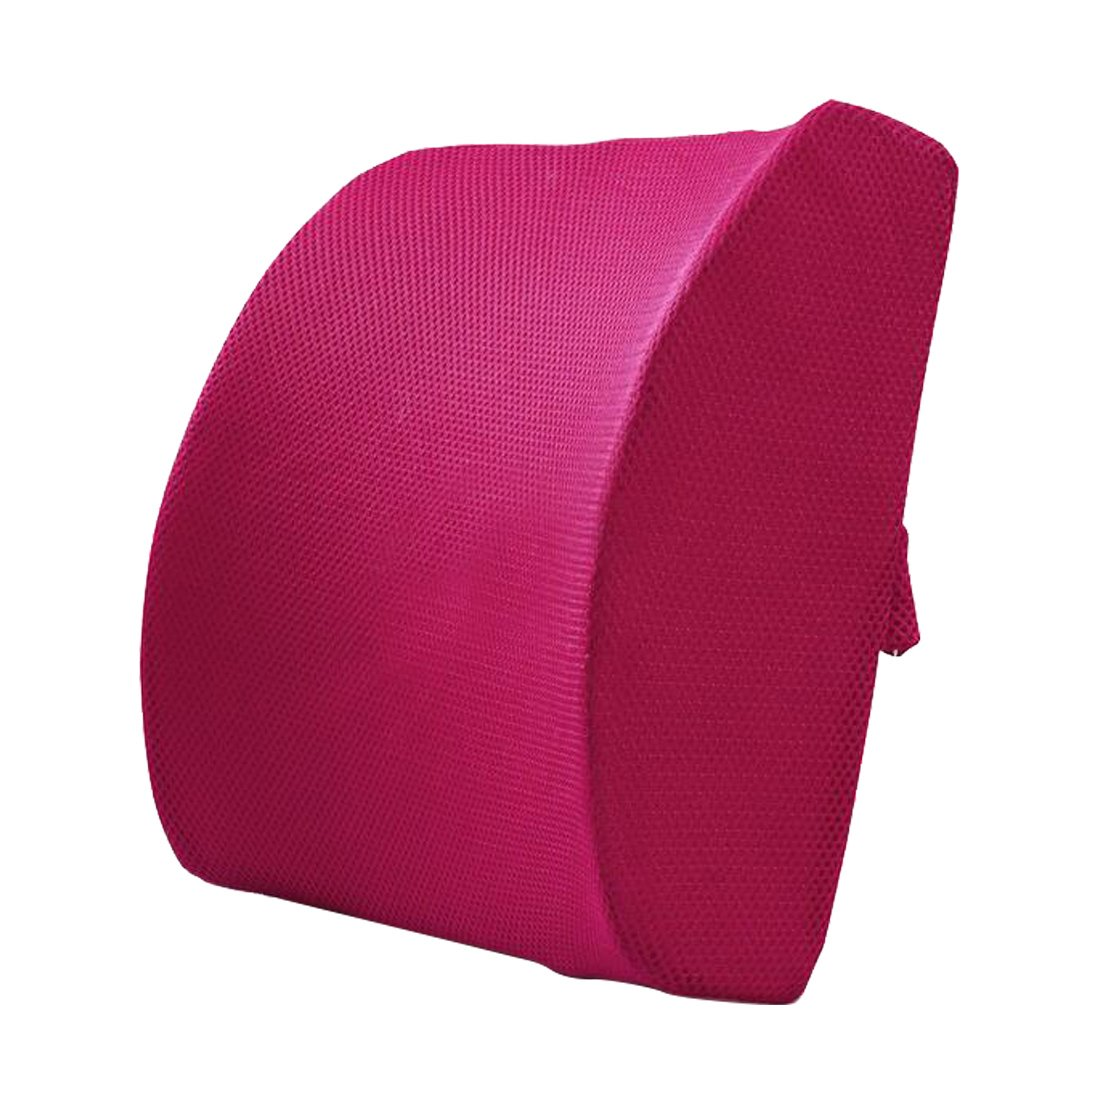 Lumbar Support Pillow Office Chair Back Cushion Back Support Cushion Coffee Luwu-Store